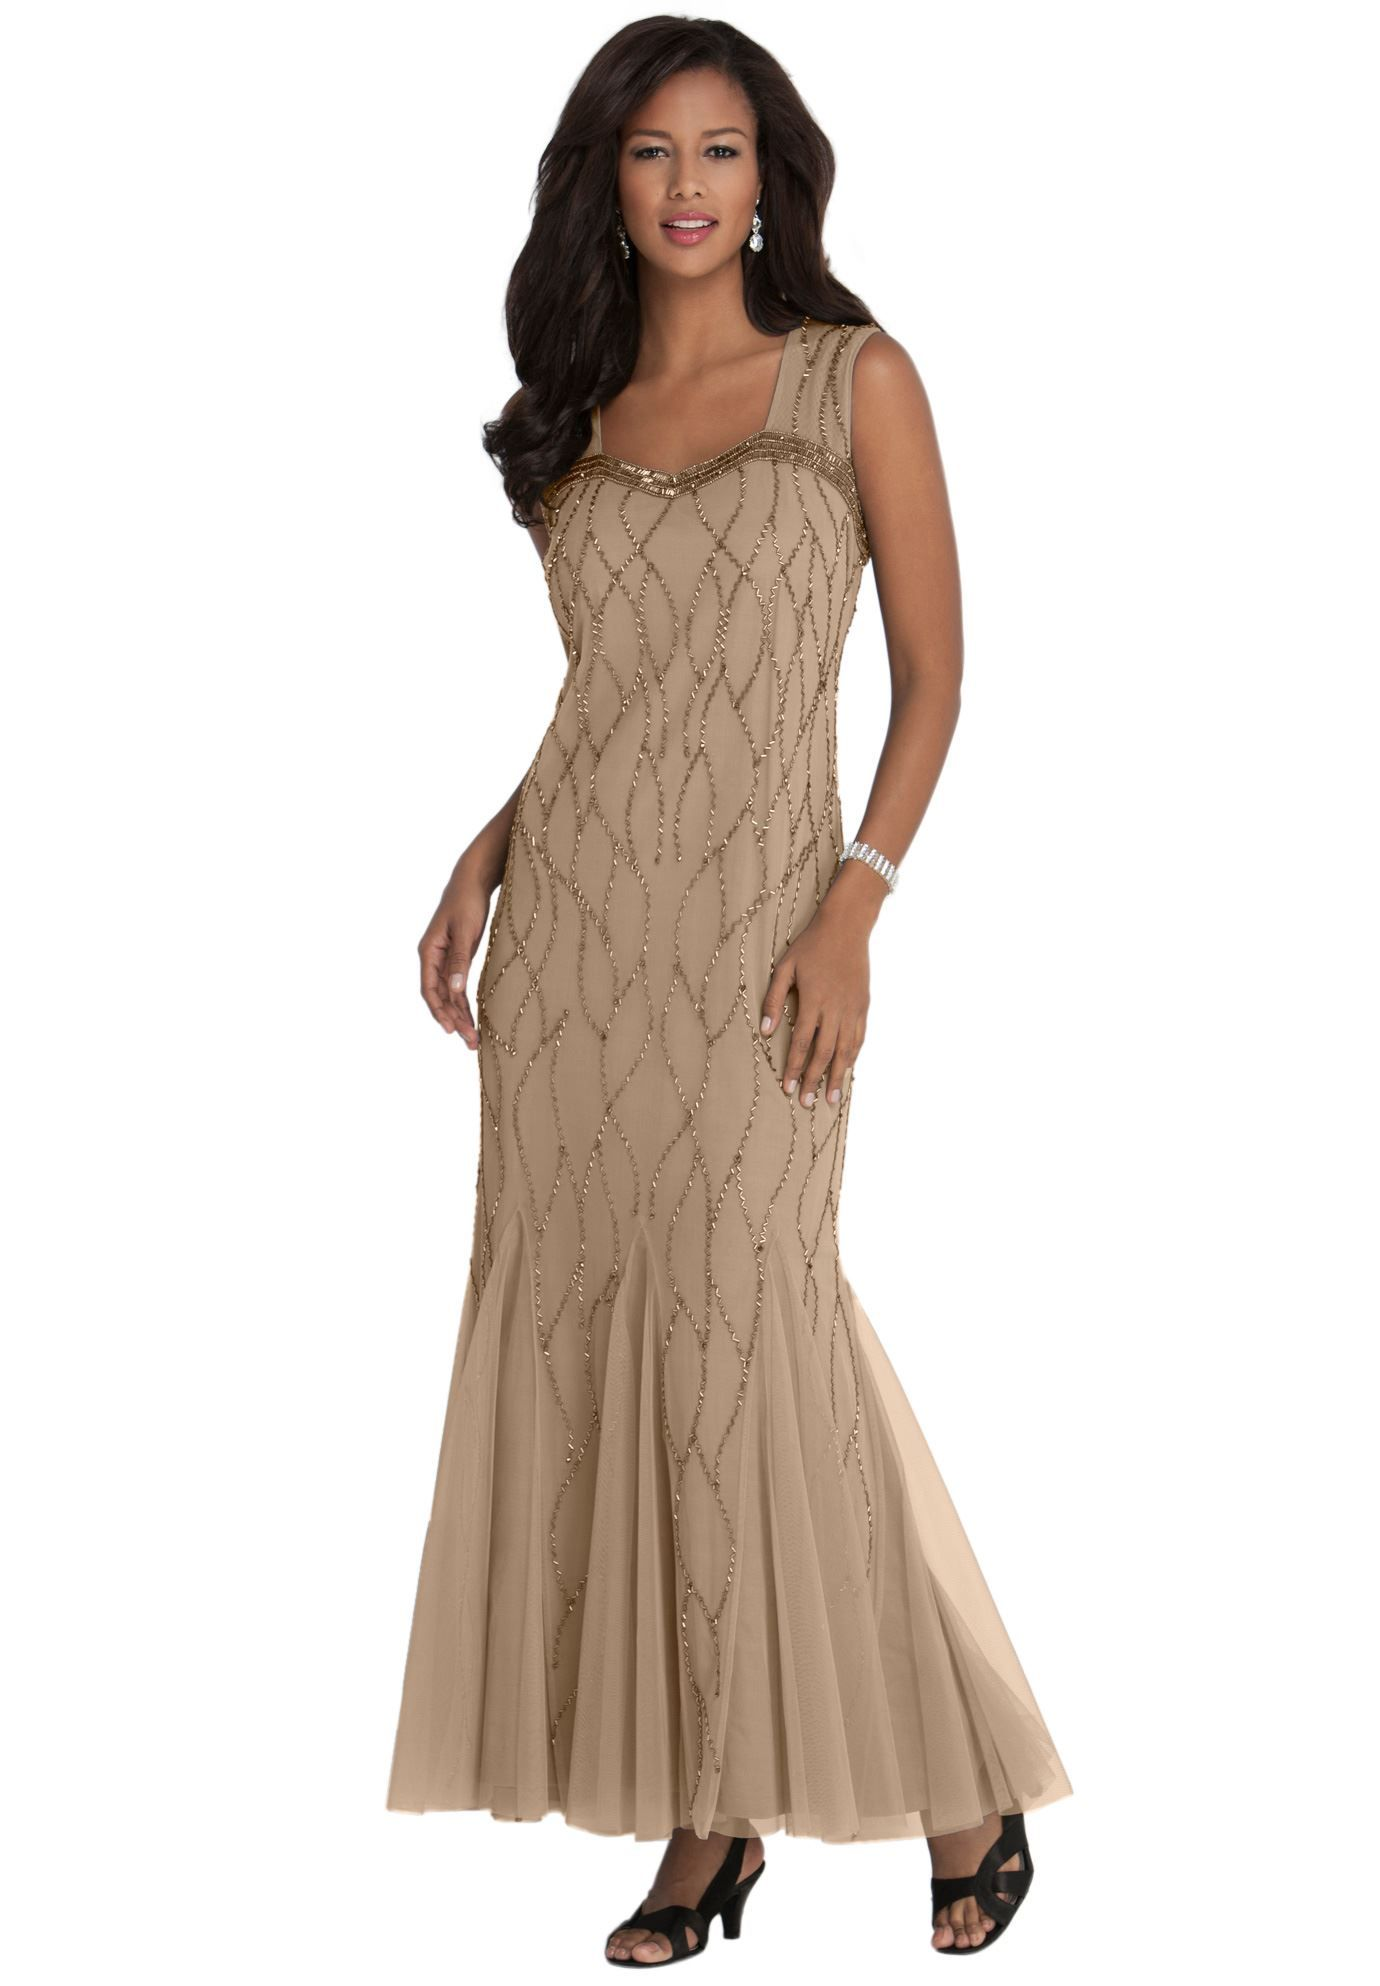 Look and feel glamorous in our beaded godet plus size dress aline